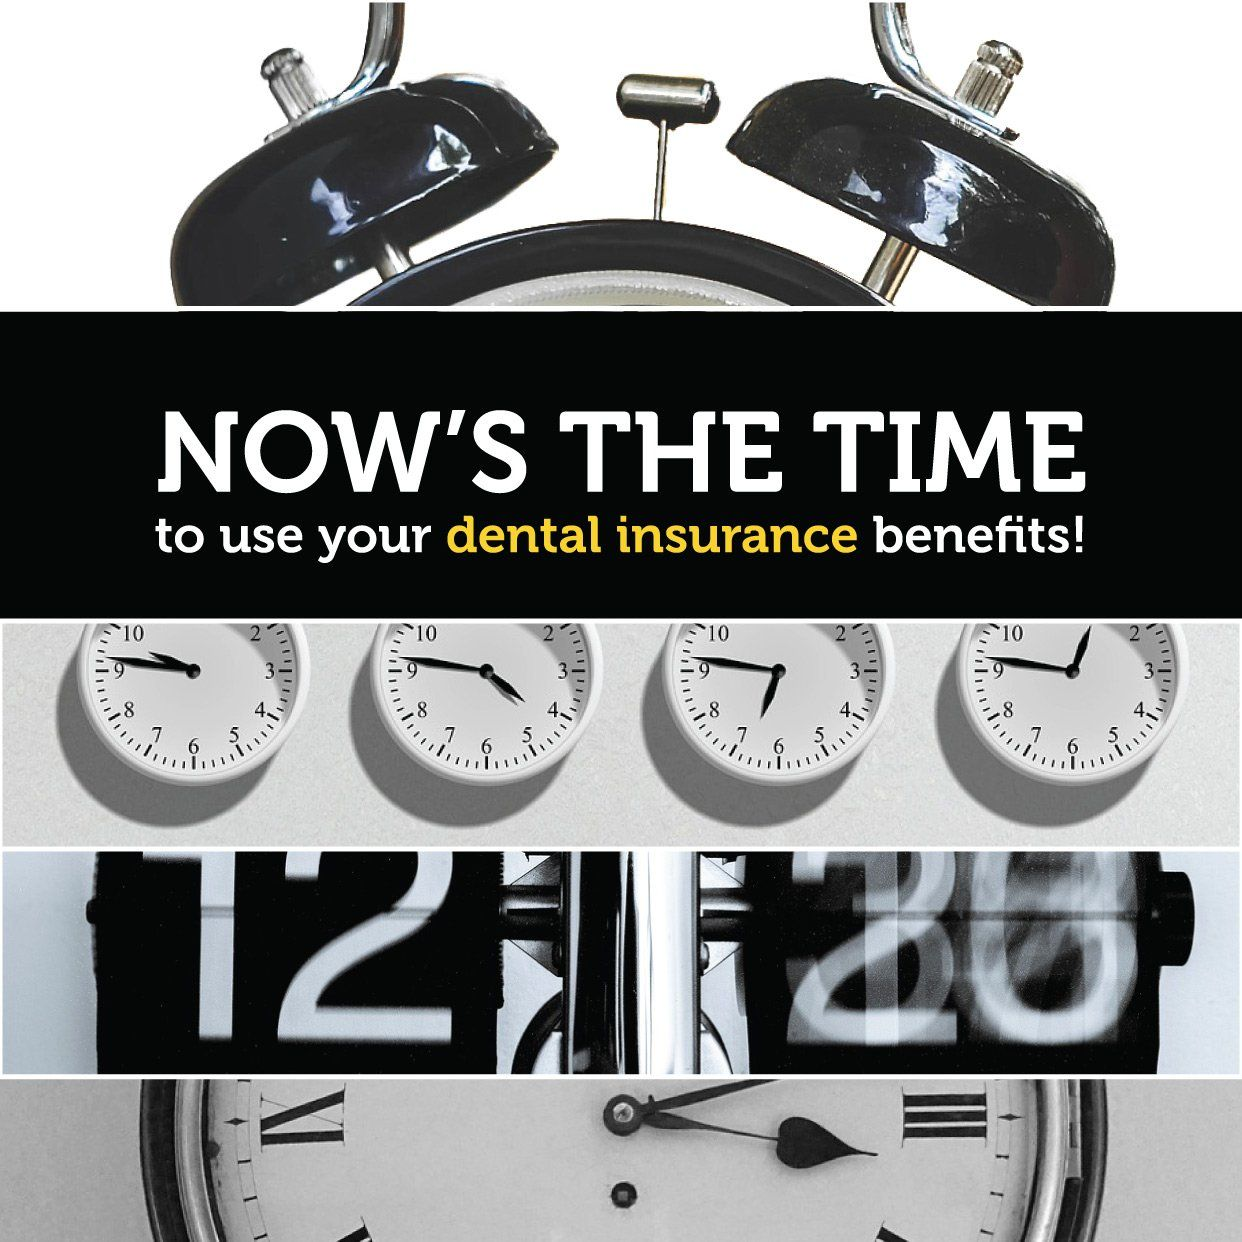 DON'T LET your insurance benefits go to waste! Be sure to